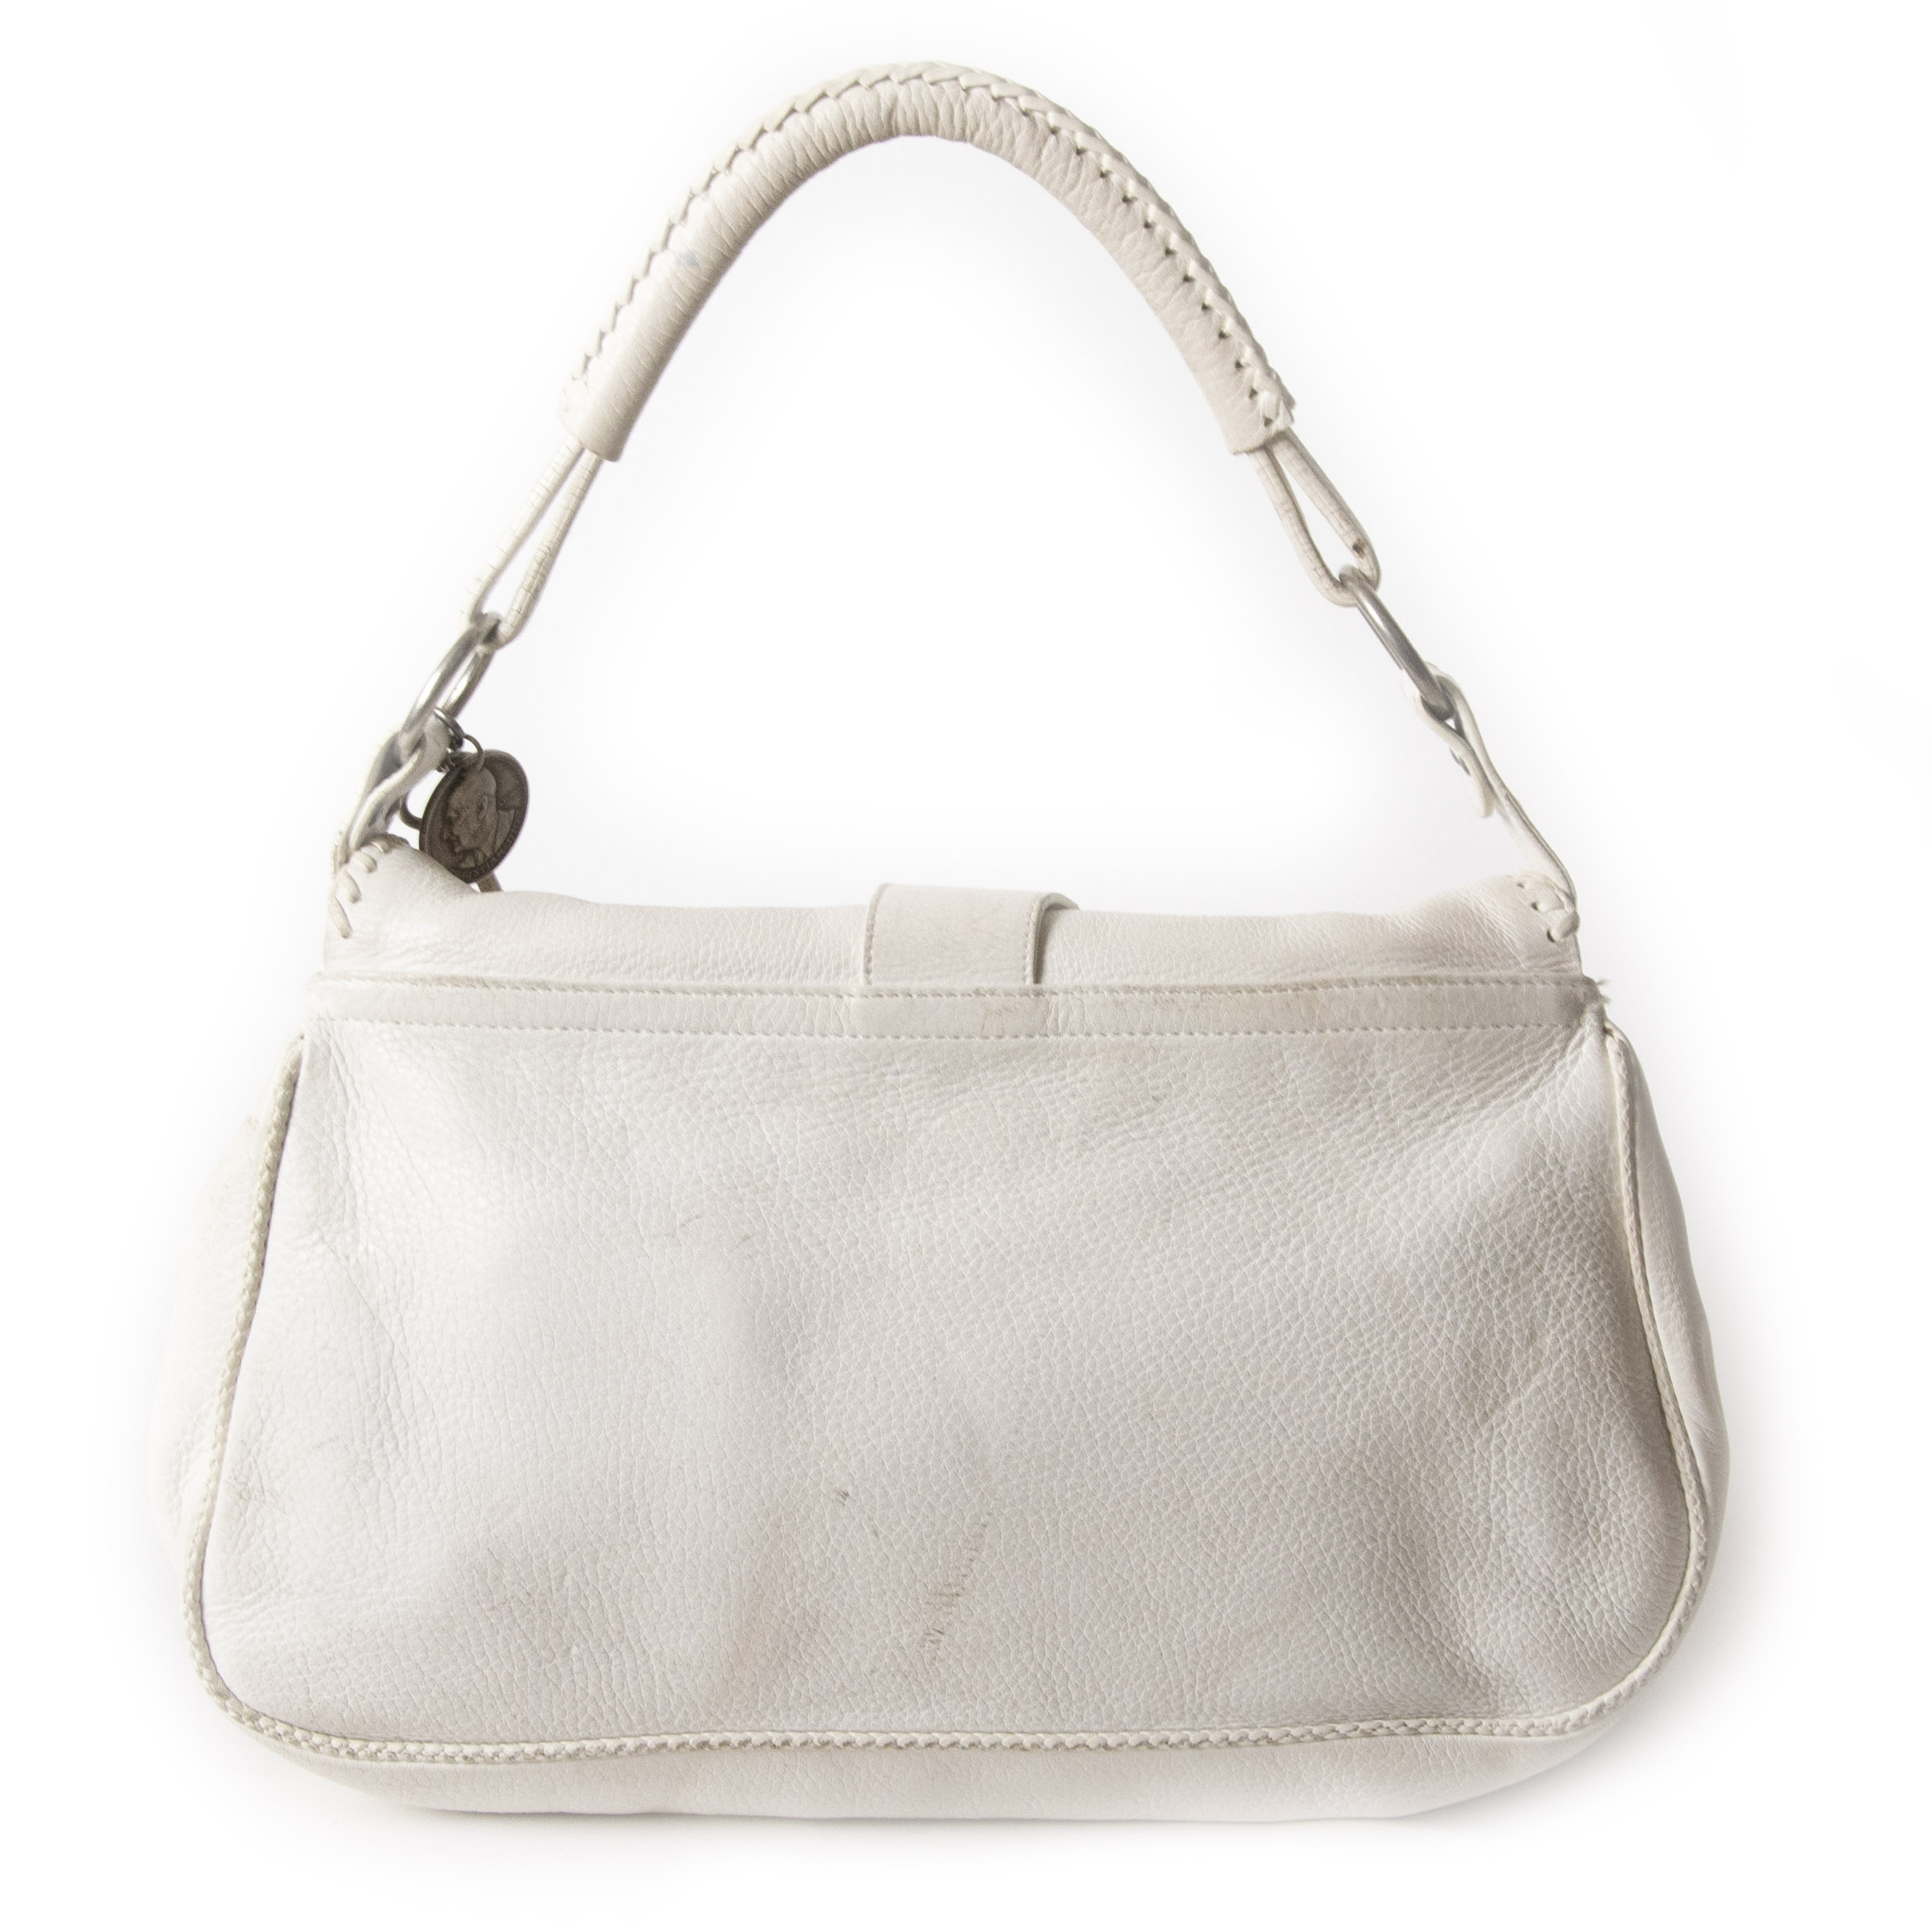 Authentic second-hand vintage Dior White Gaucho Double Saddle Bag buy online webshop LabelLOV